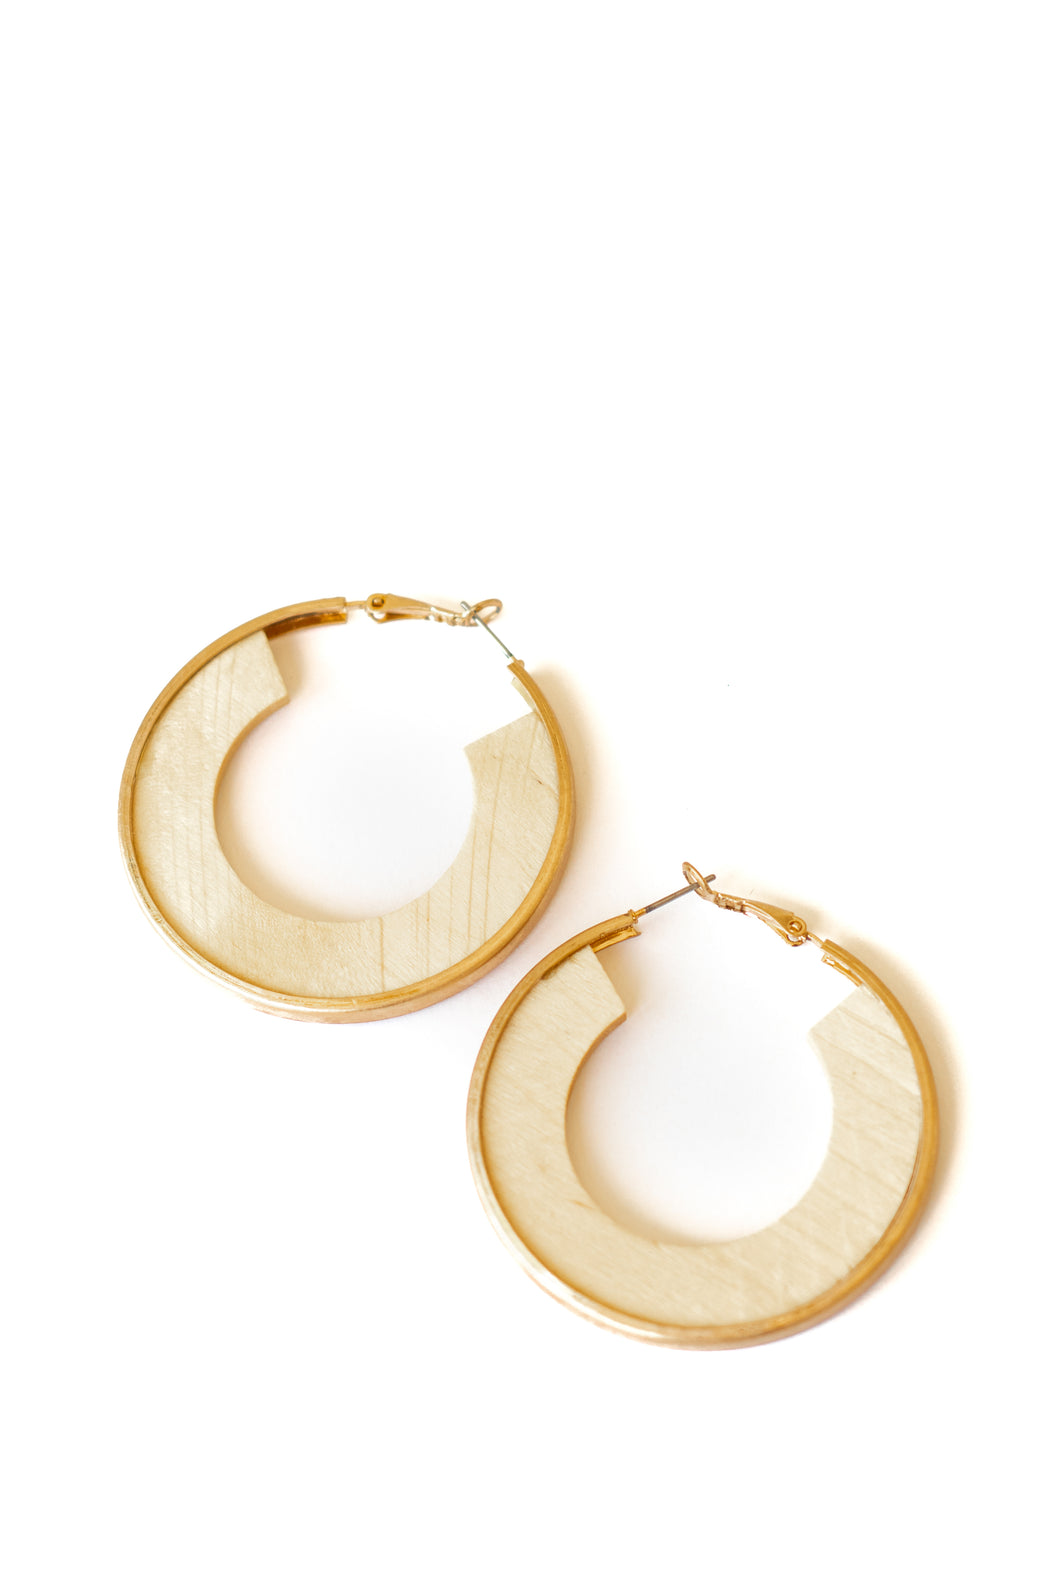 Latchback Gold Wood Hoop Earrings - Ivory